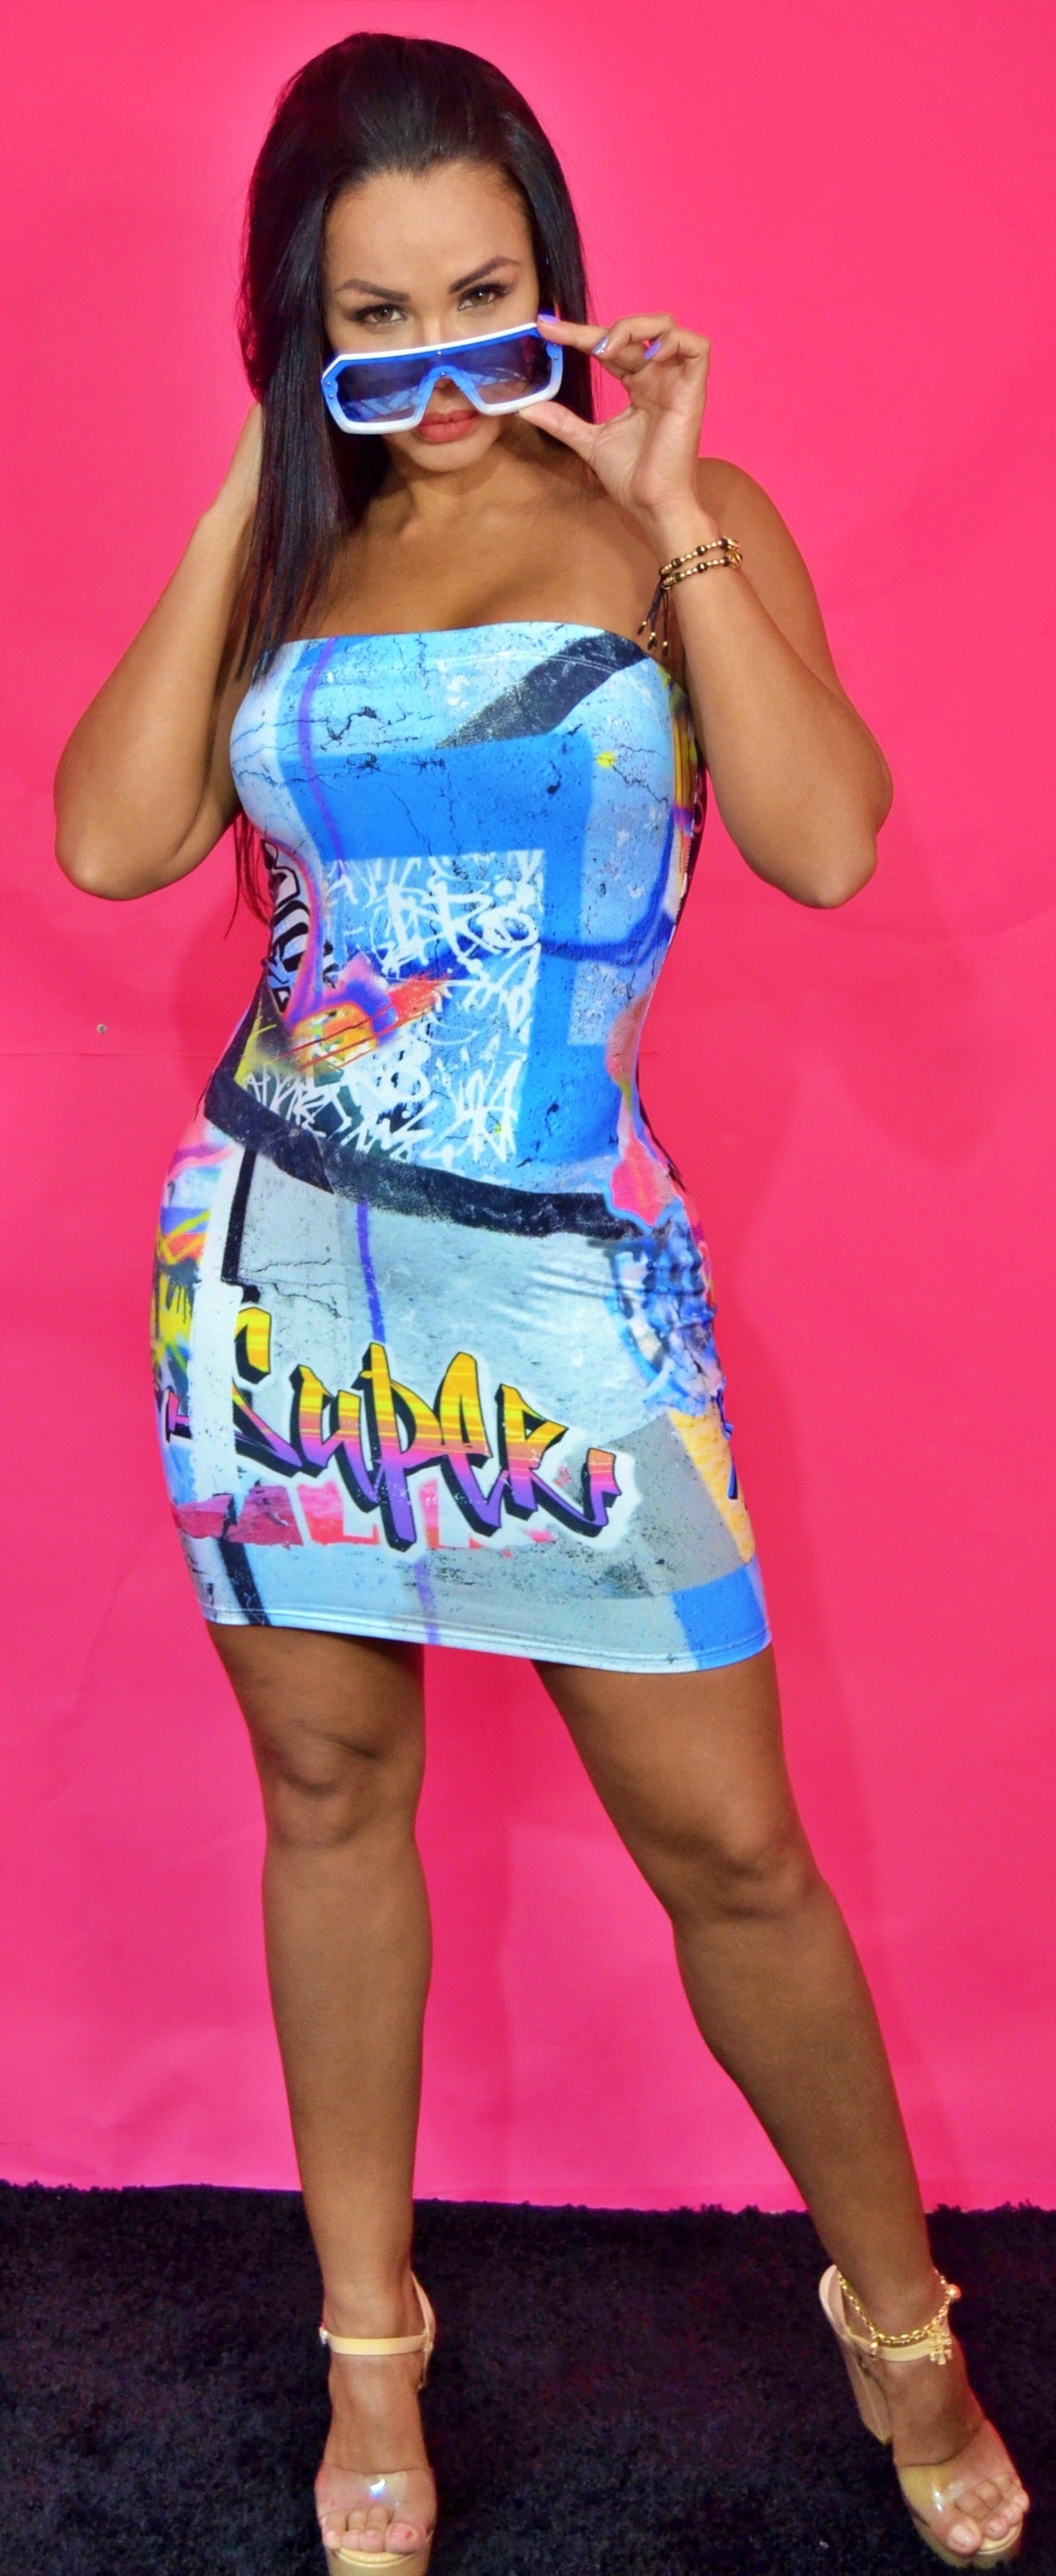 Mir tube top graffiti dress